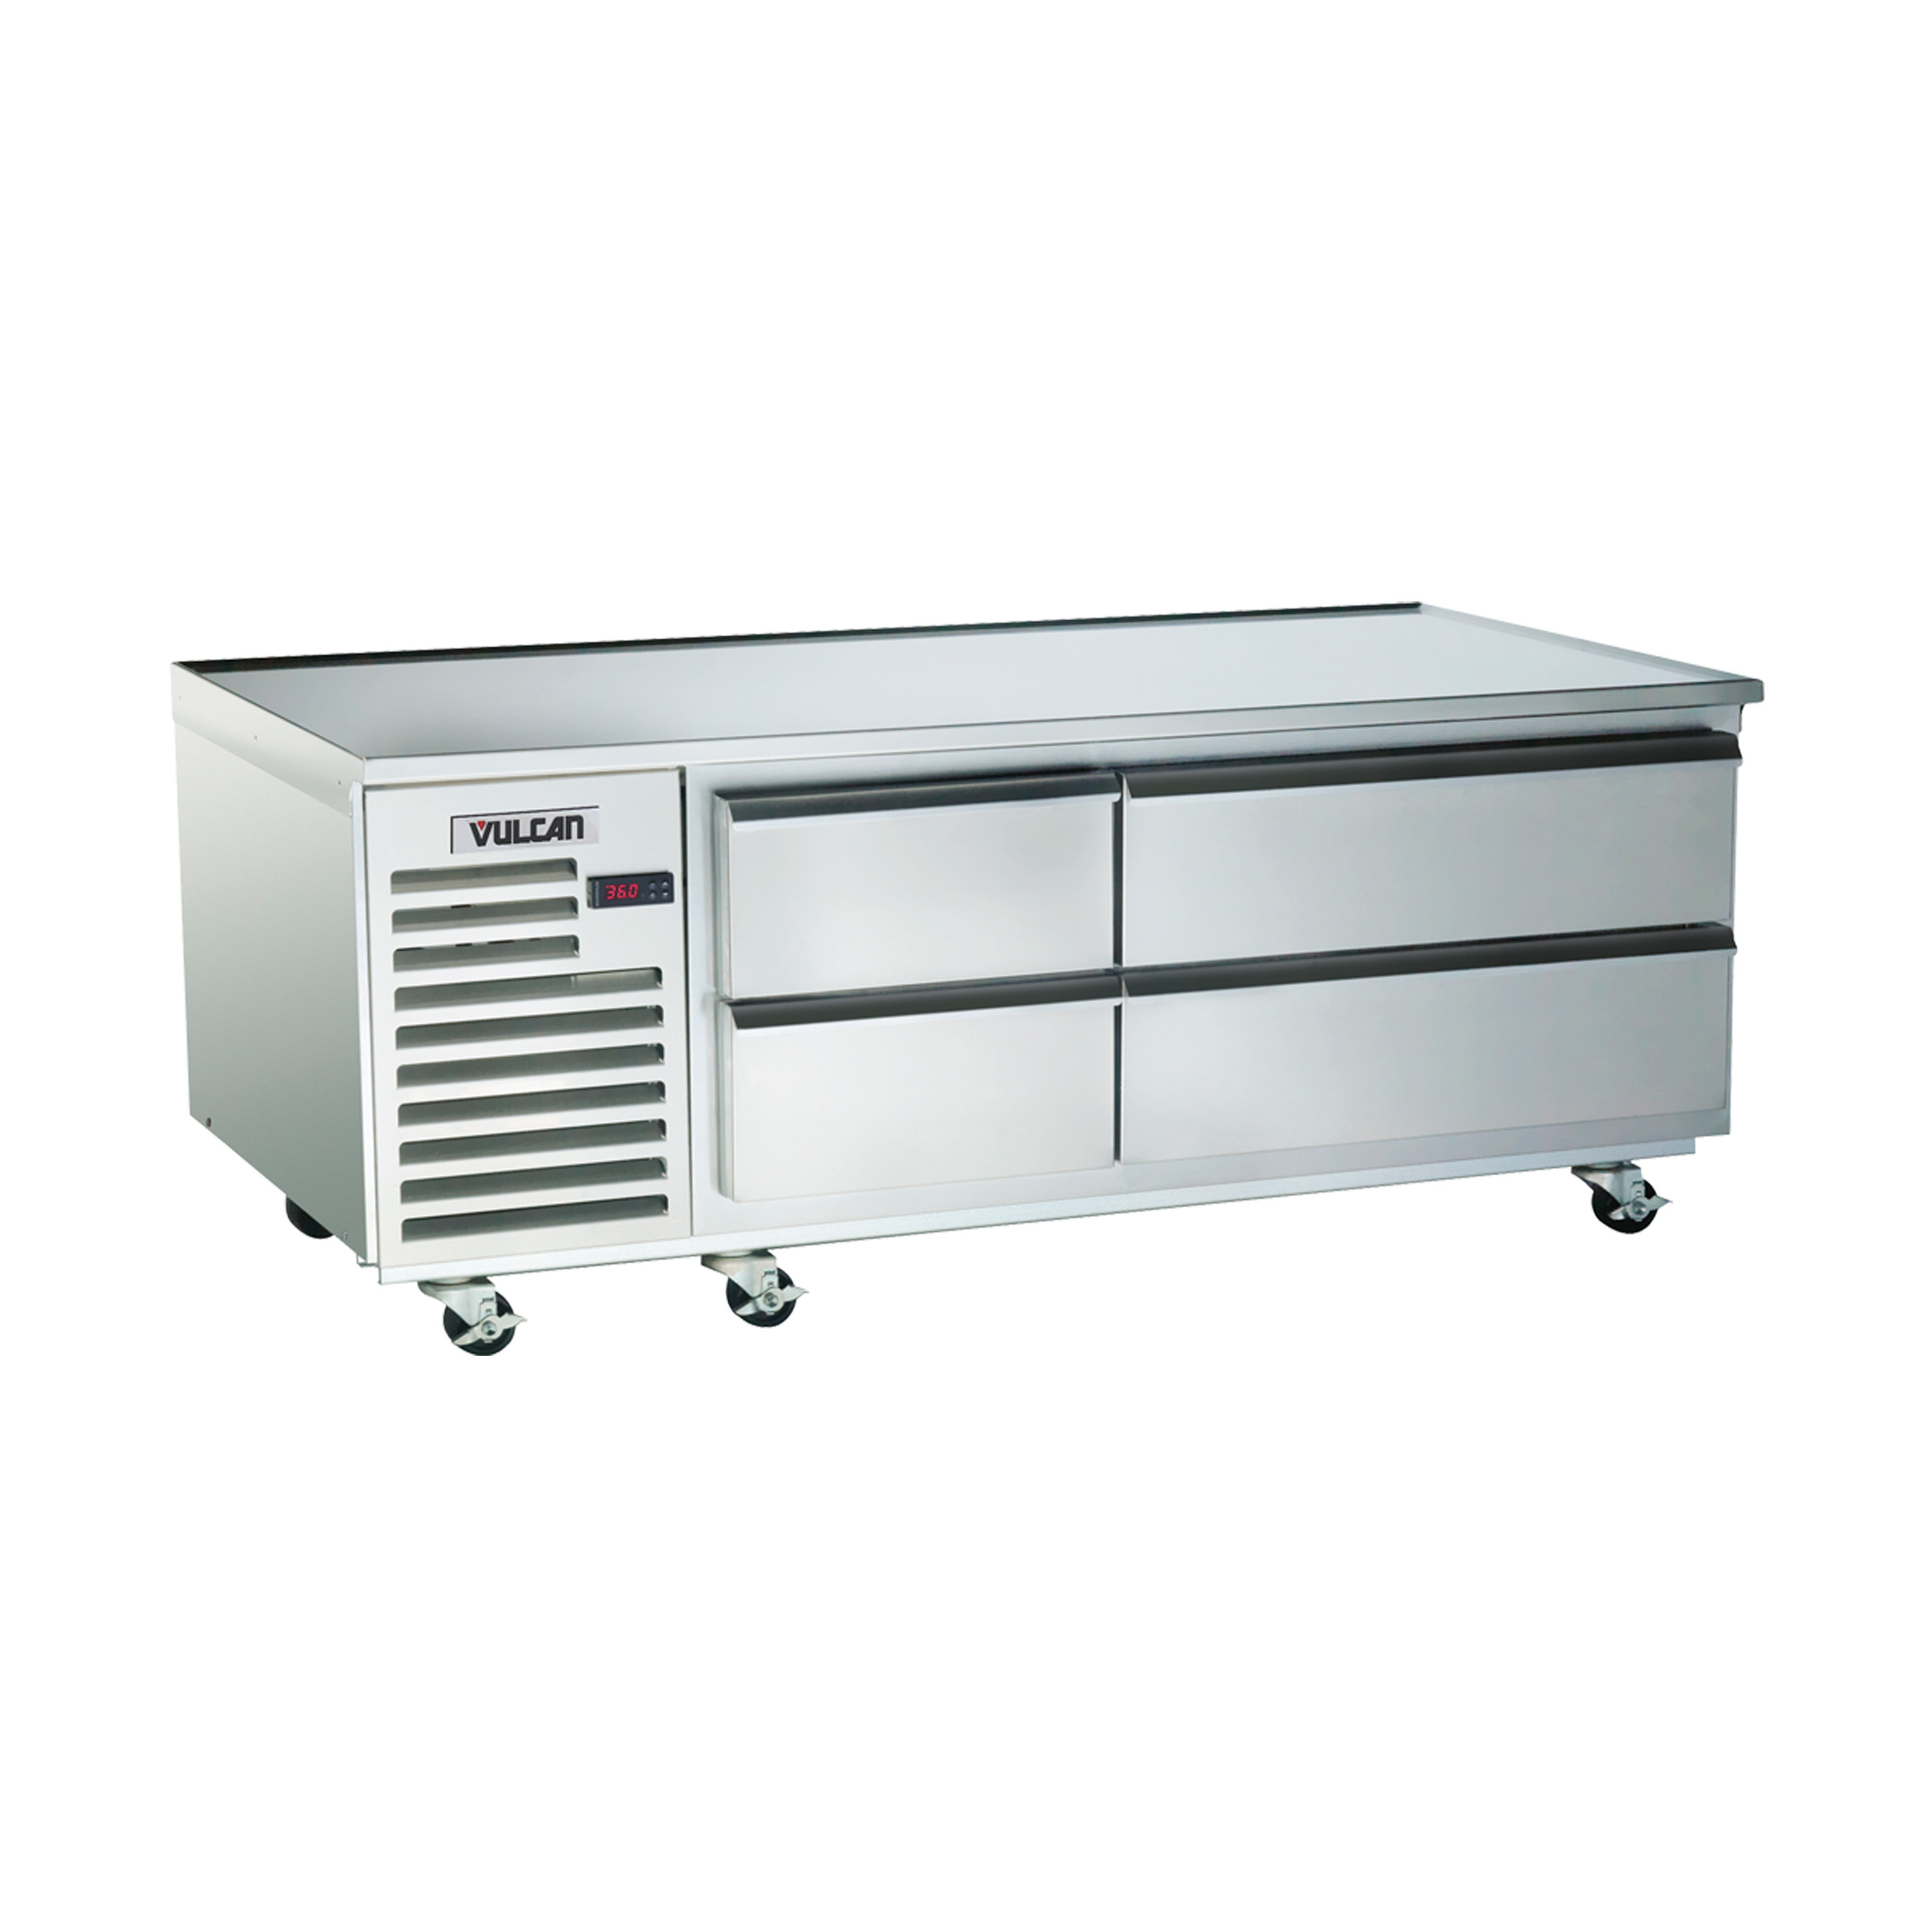 Vulcan ARS72 equipment stand, refrigerated base